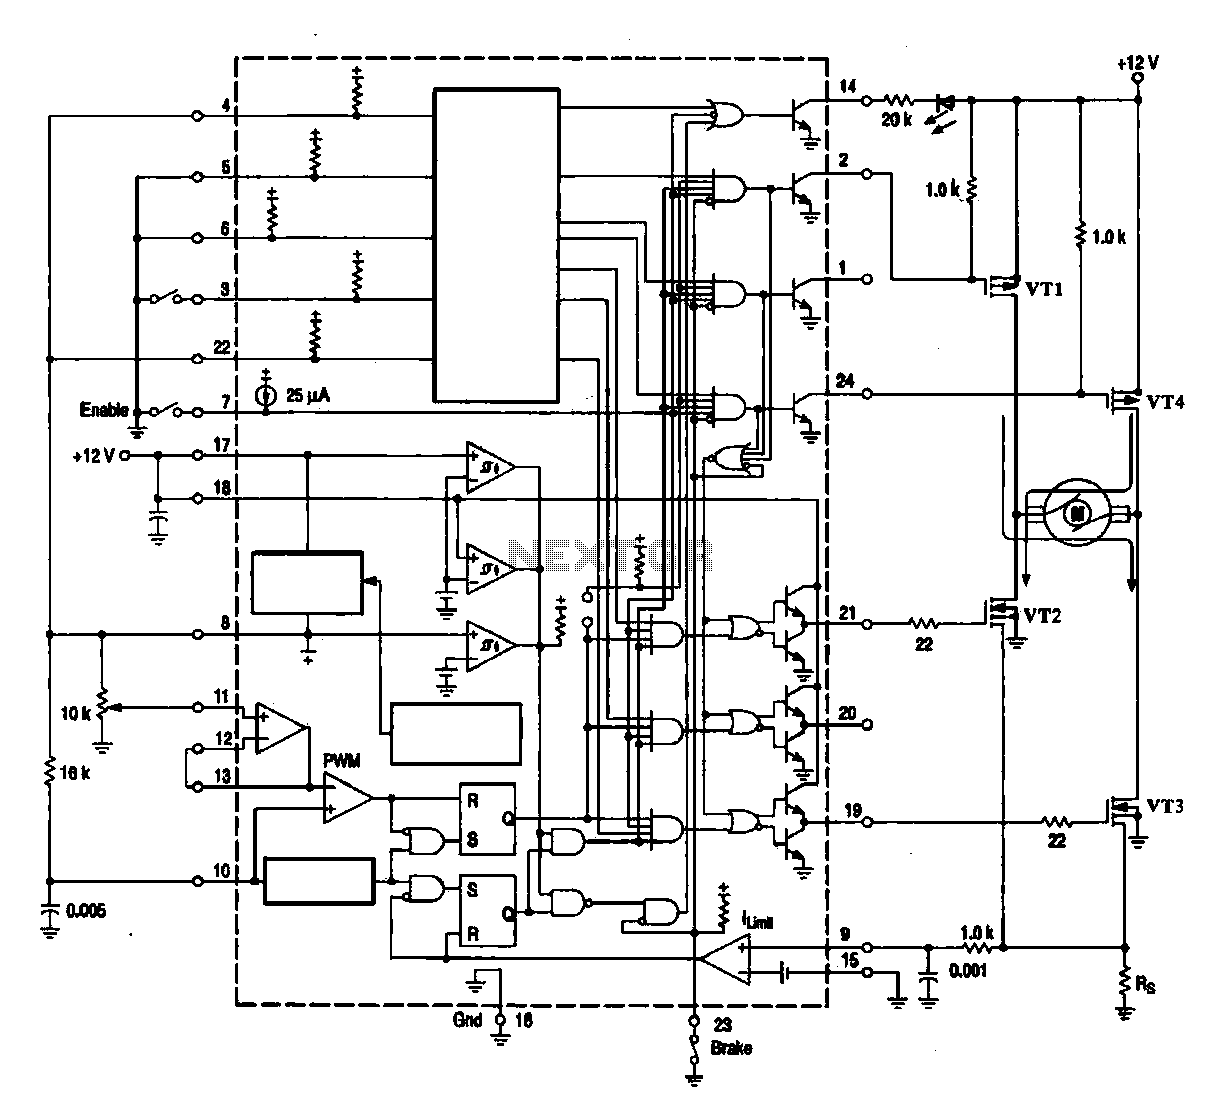 DC brush motor driver circuit diagram - schematic